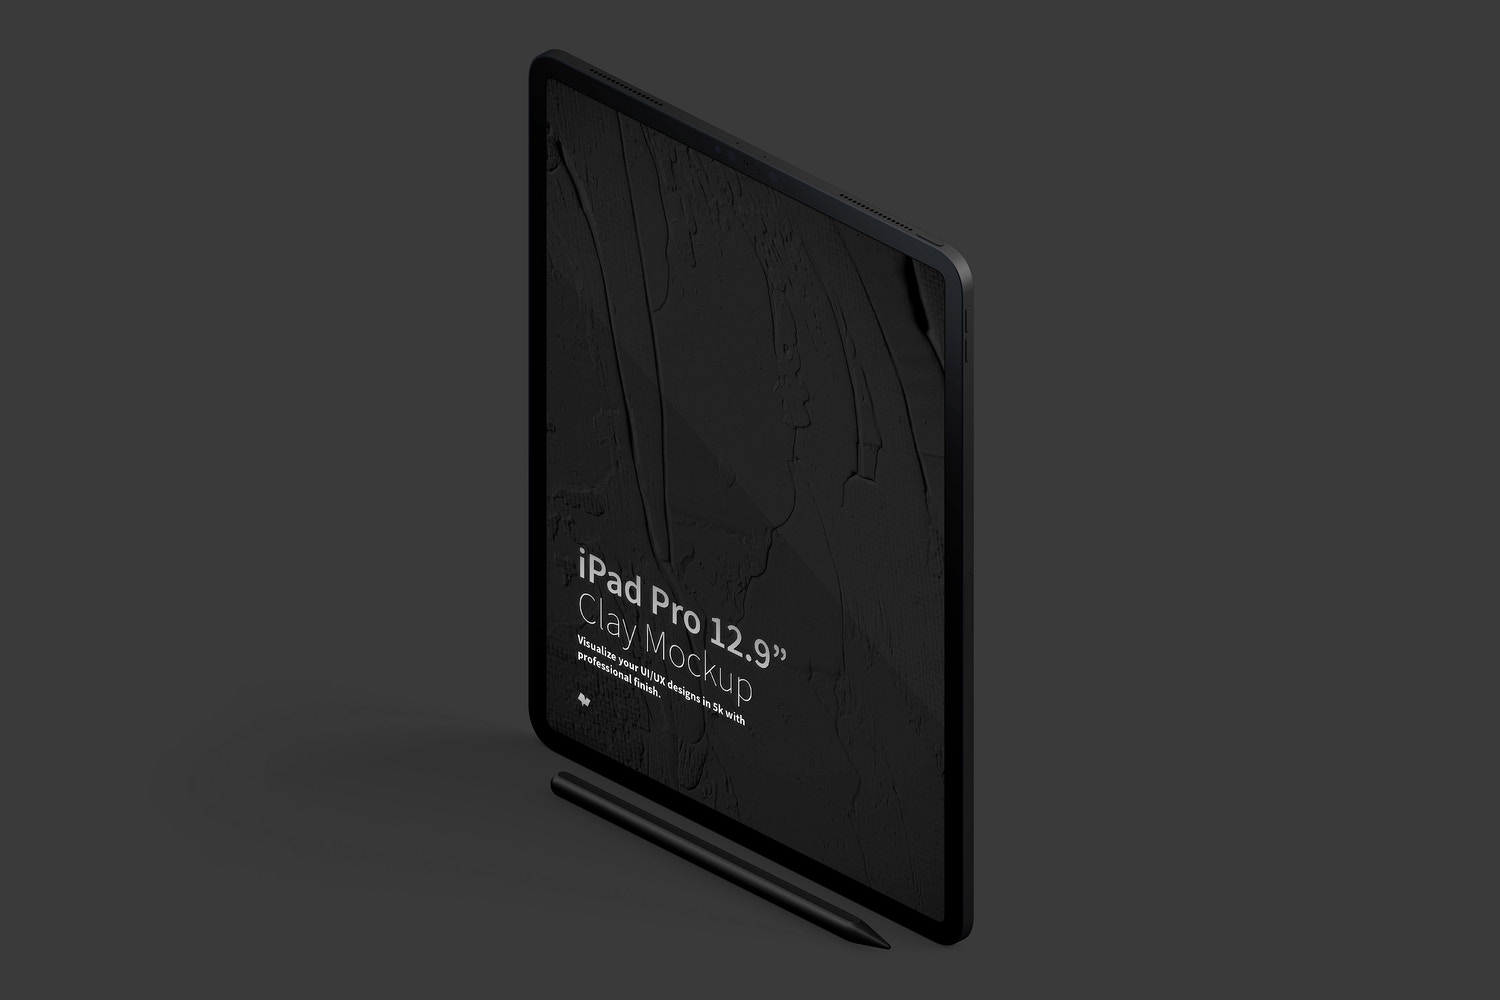 "Clay iPad Pro 12.9"" Mockup, Isometric Left View 02 (5) by Original Mockups on Original Mockups"